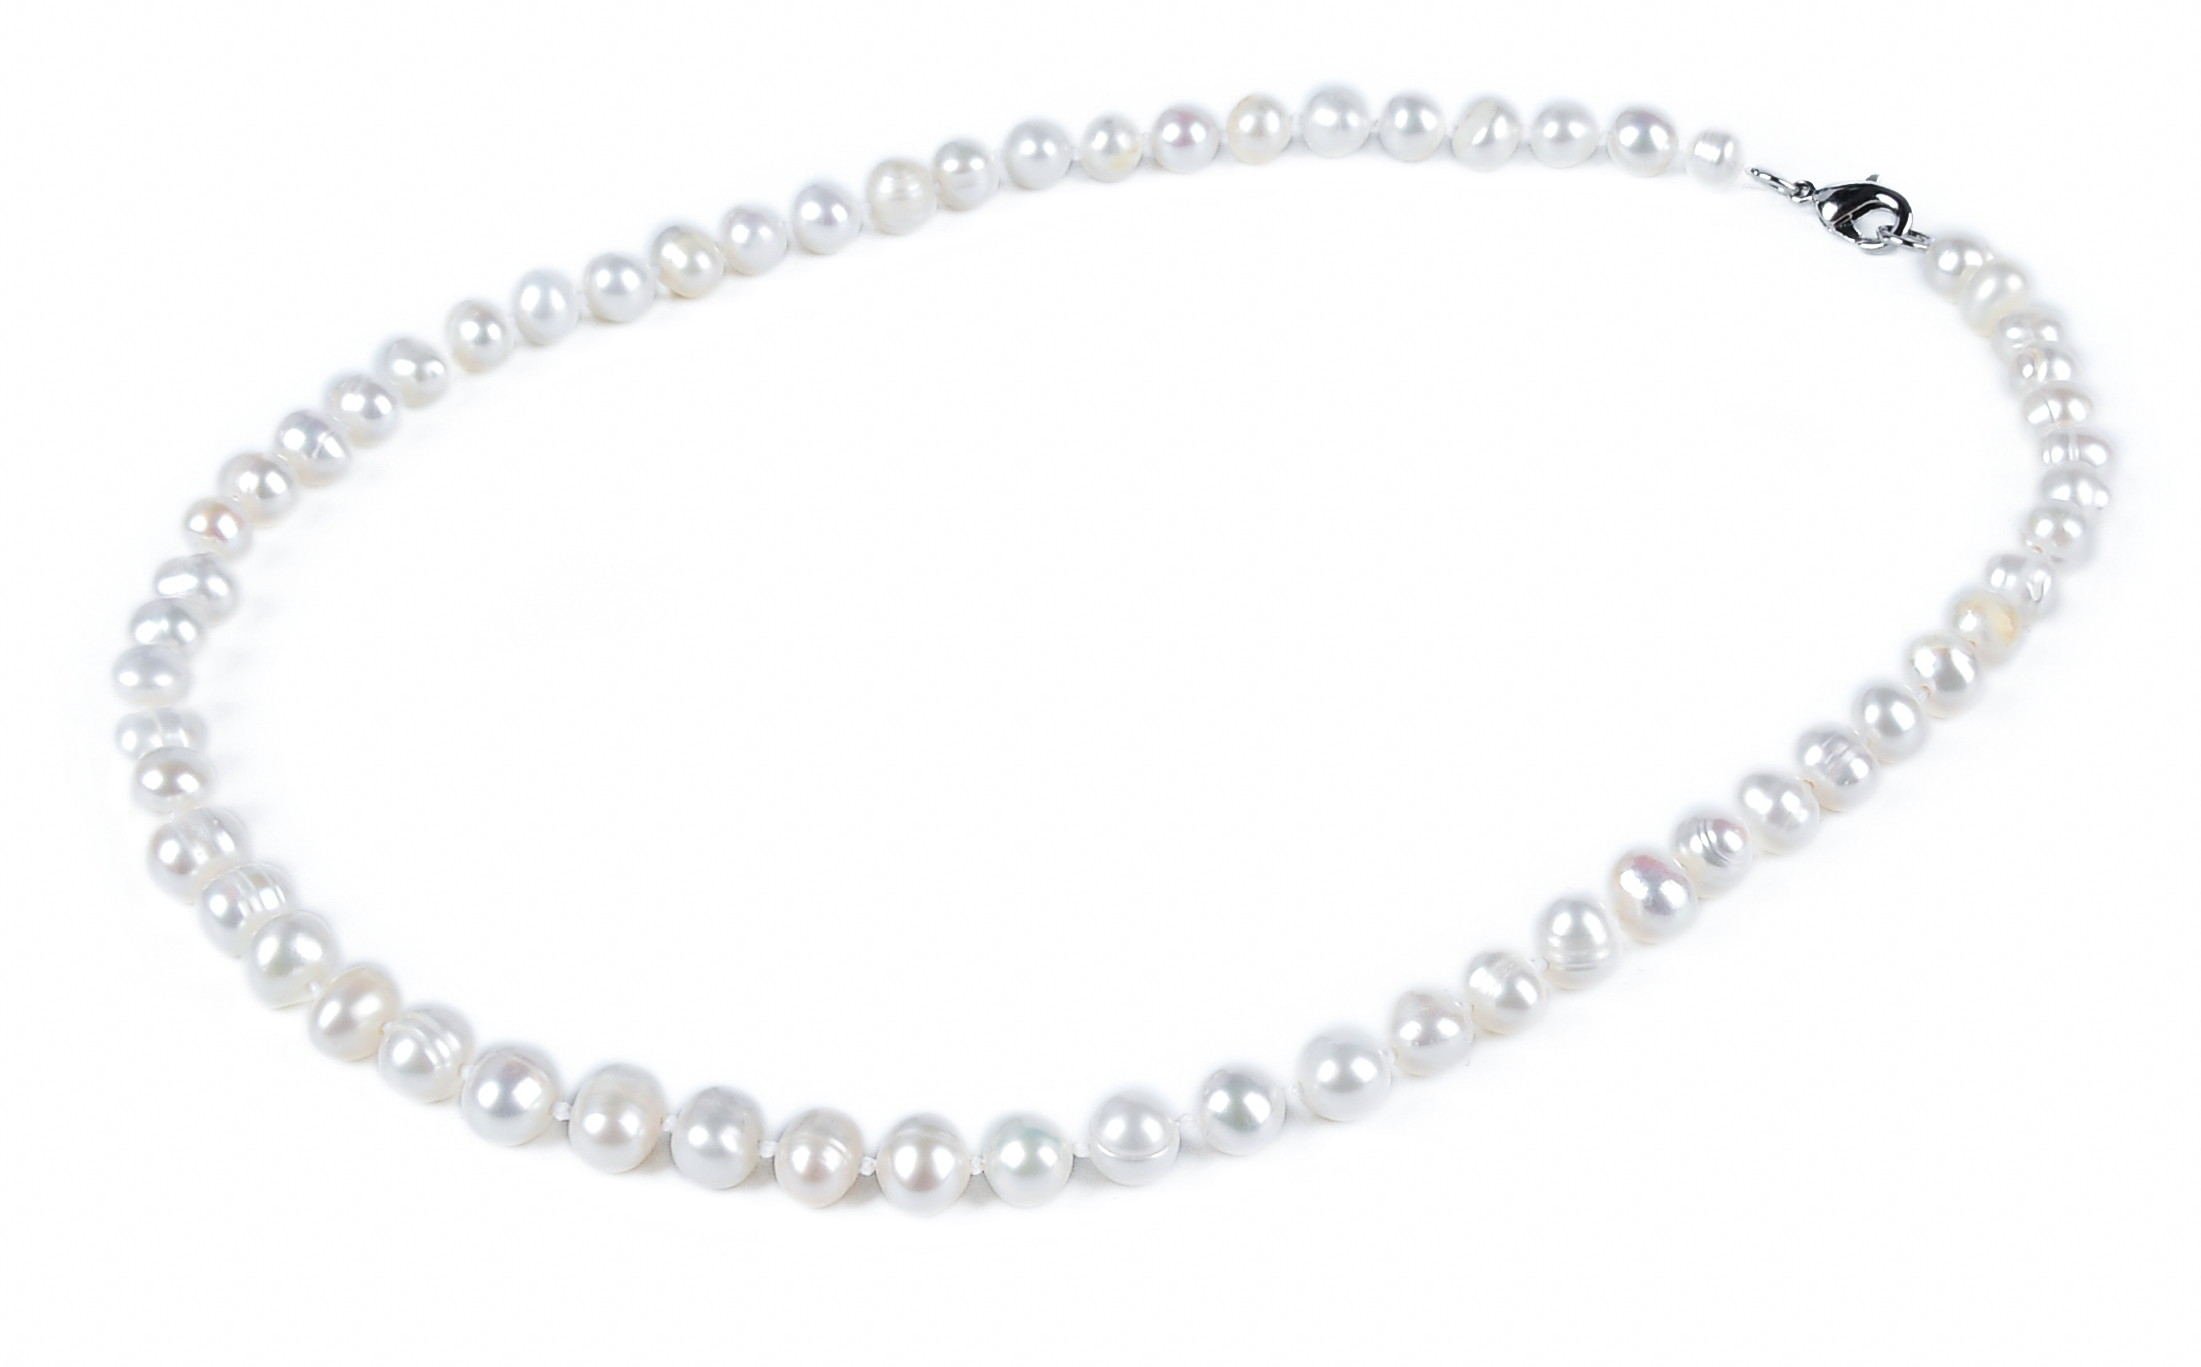 6.5 mm White Freshwater Pearl Necklace -nk103